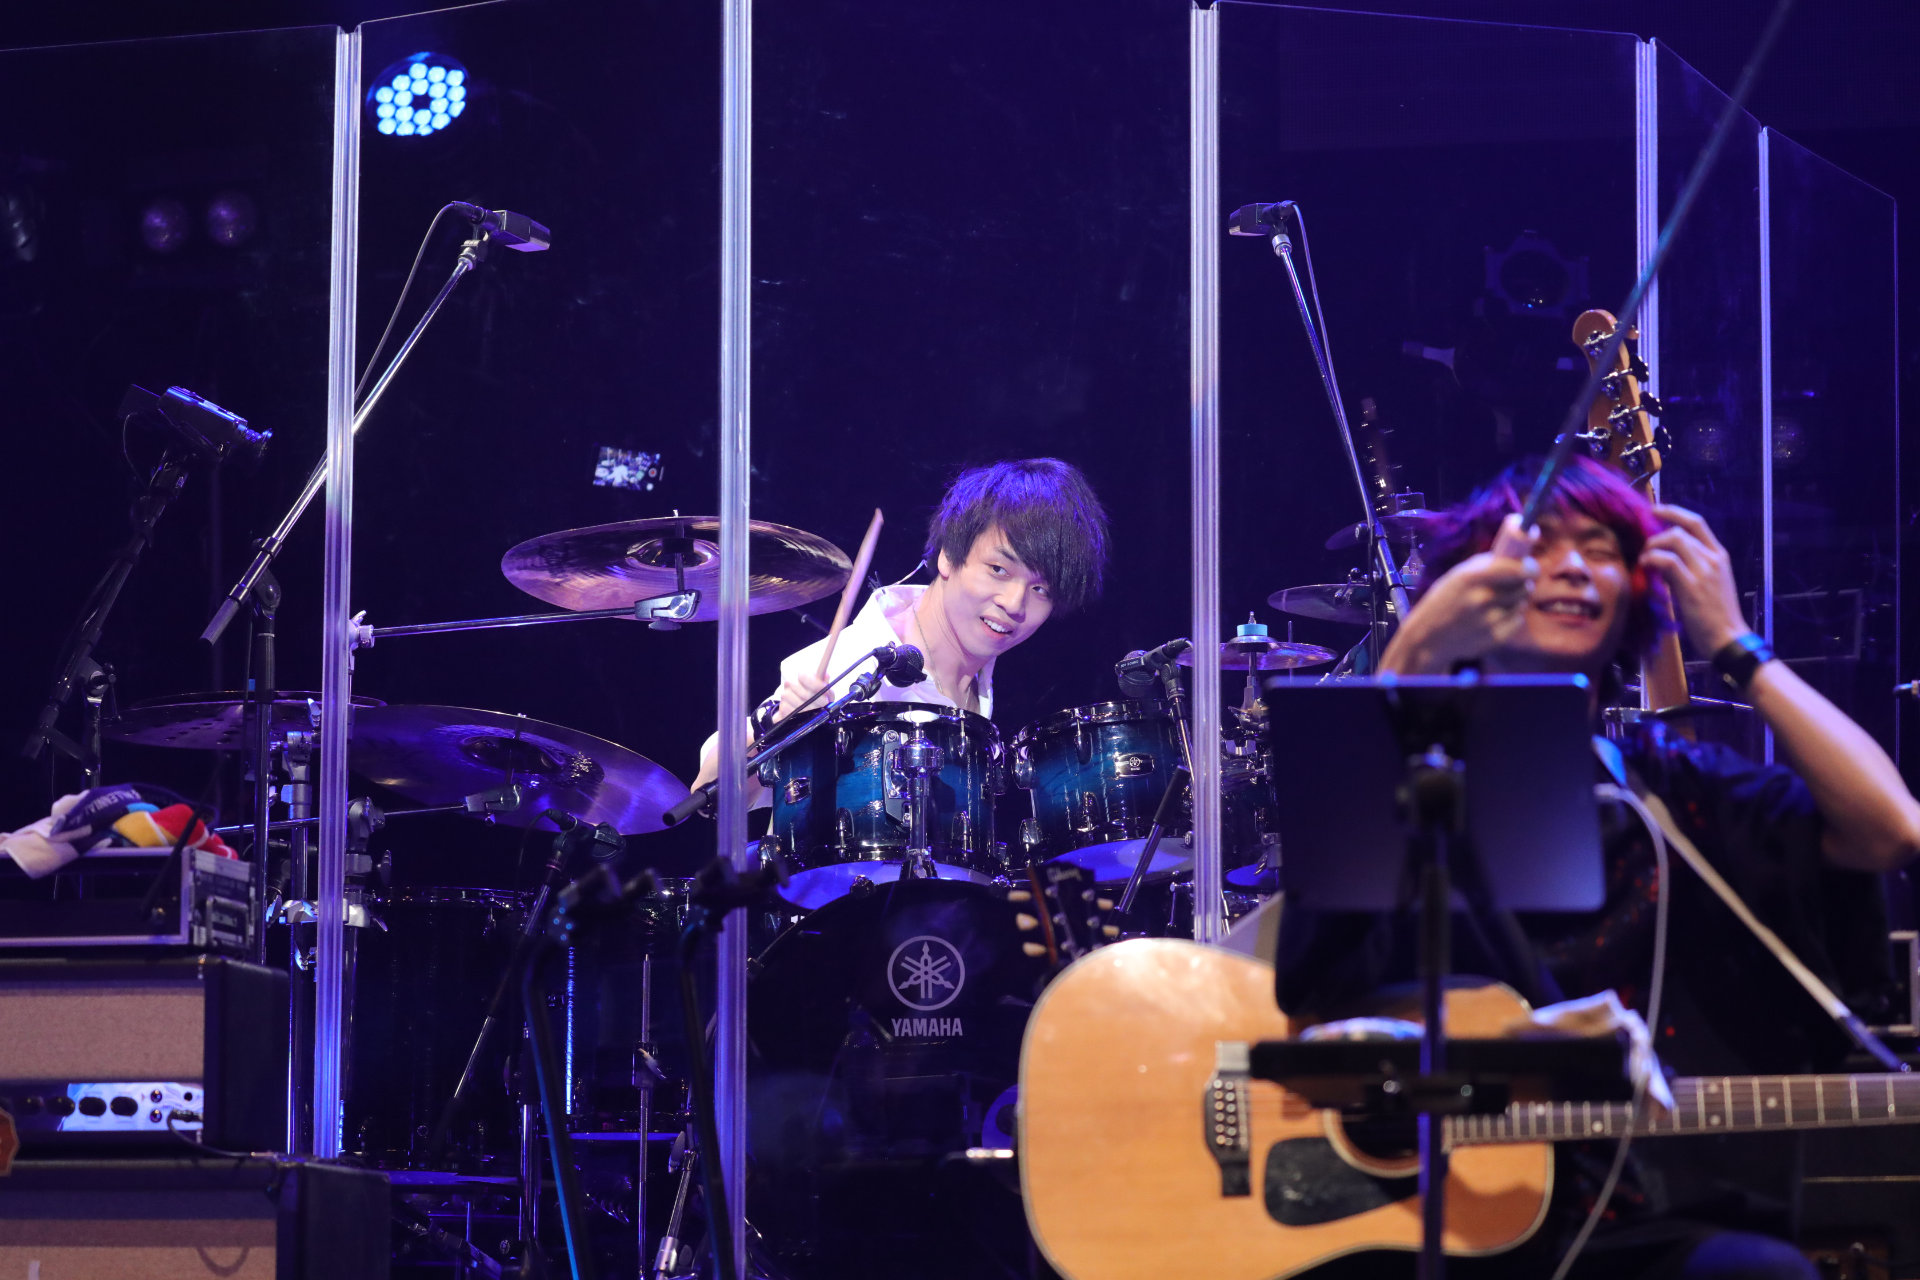 Chrono Cross concert photo of a guitarist and drummer performing.